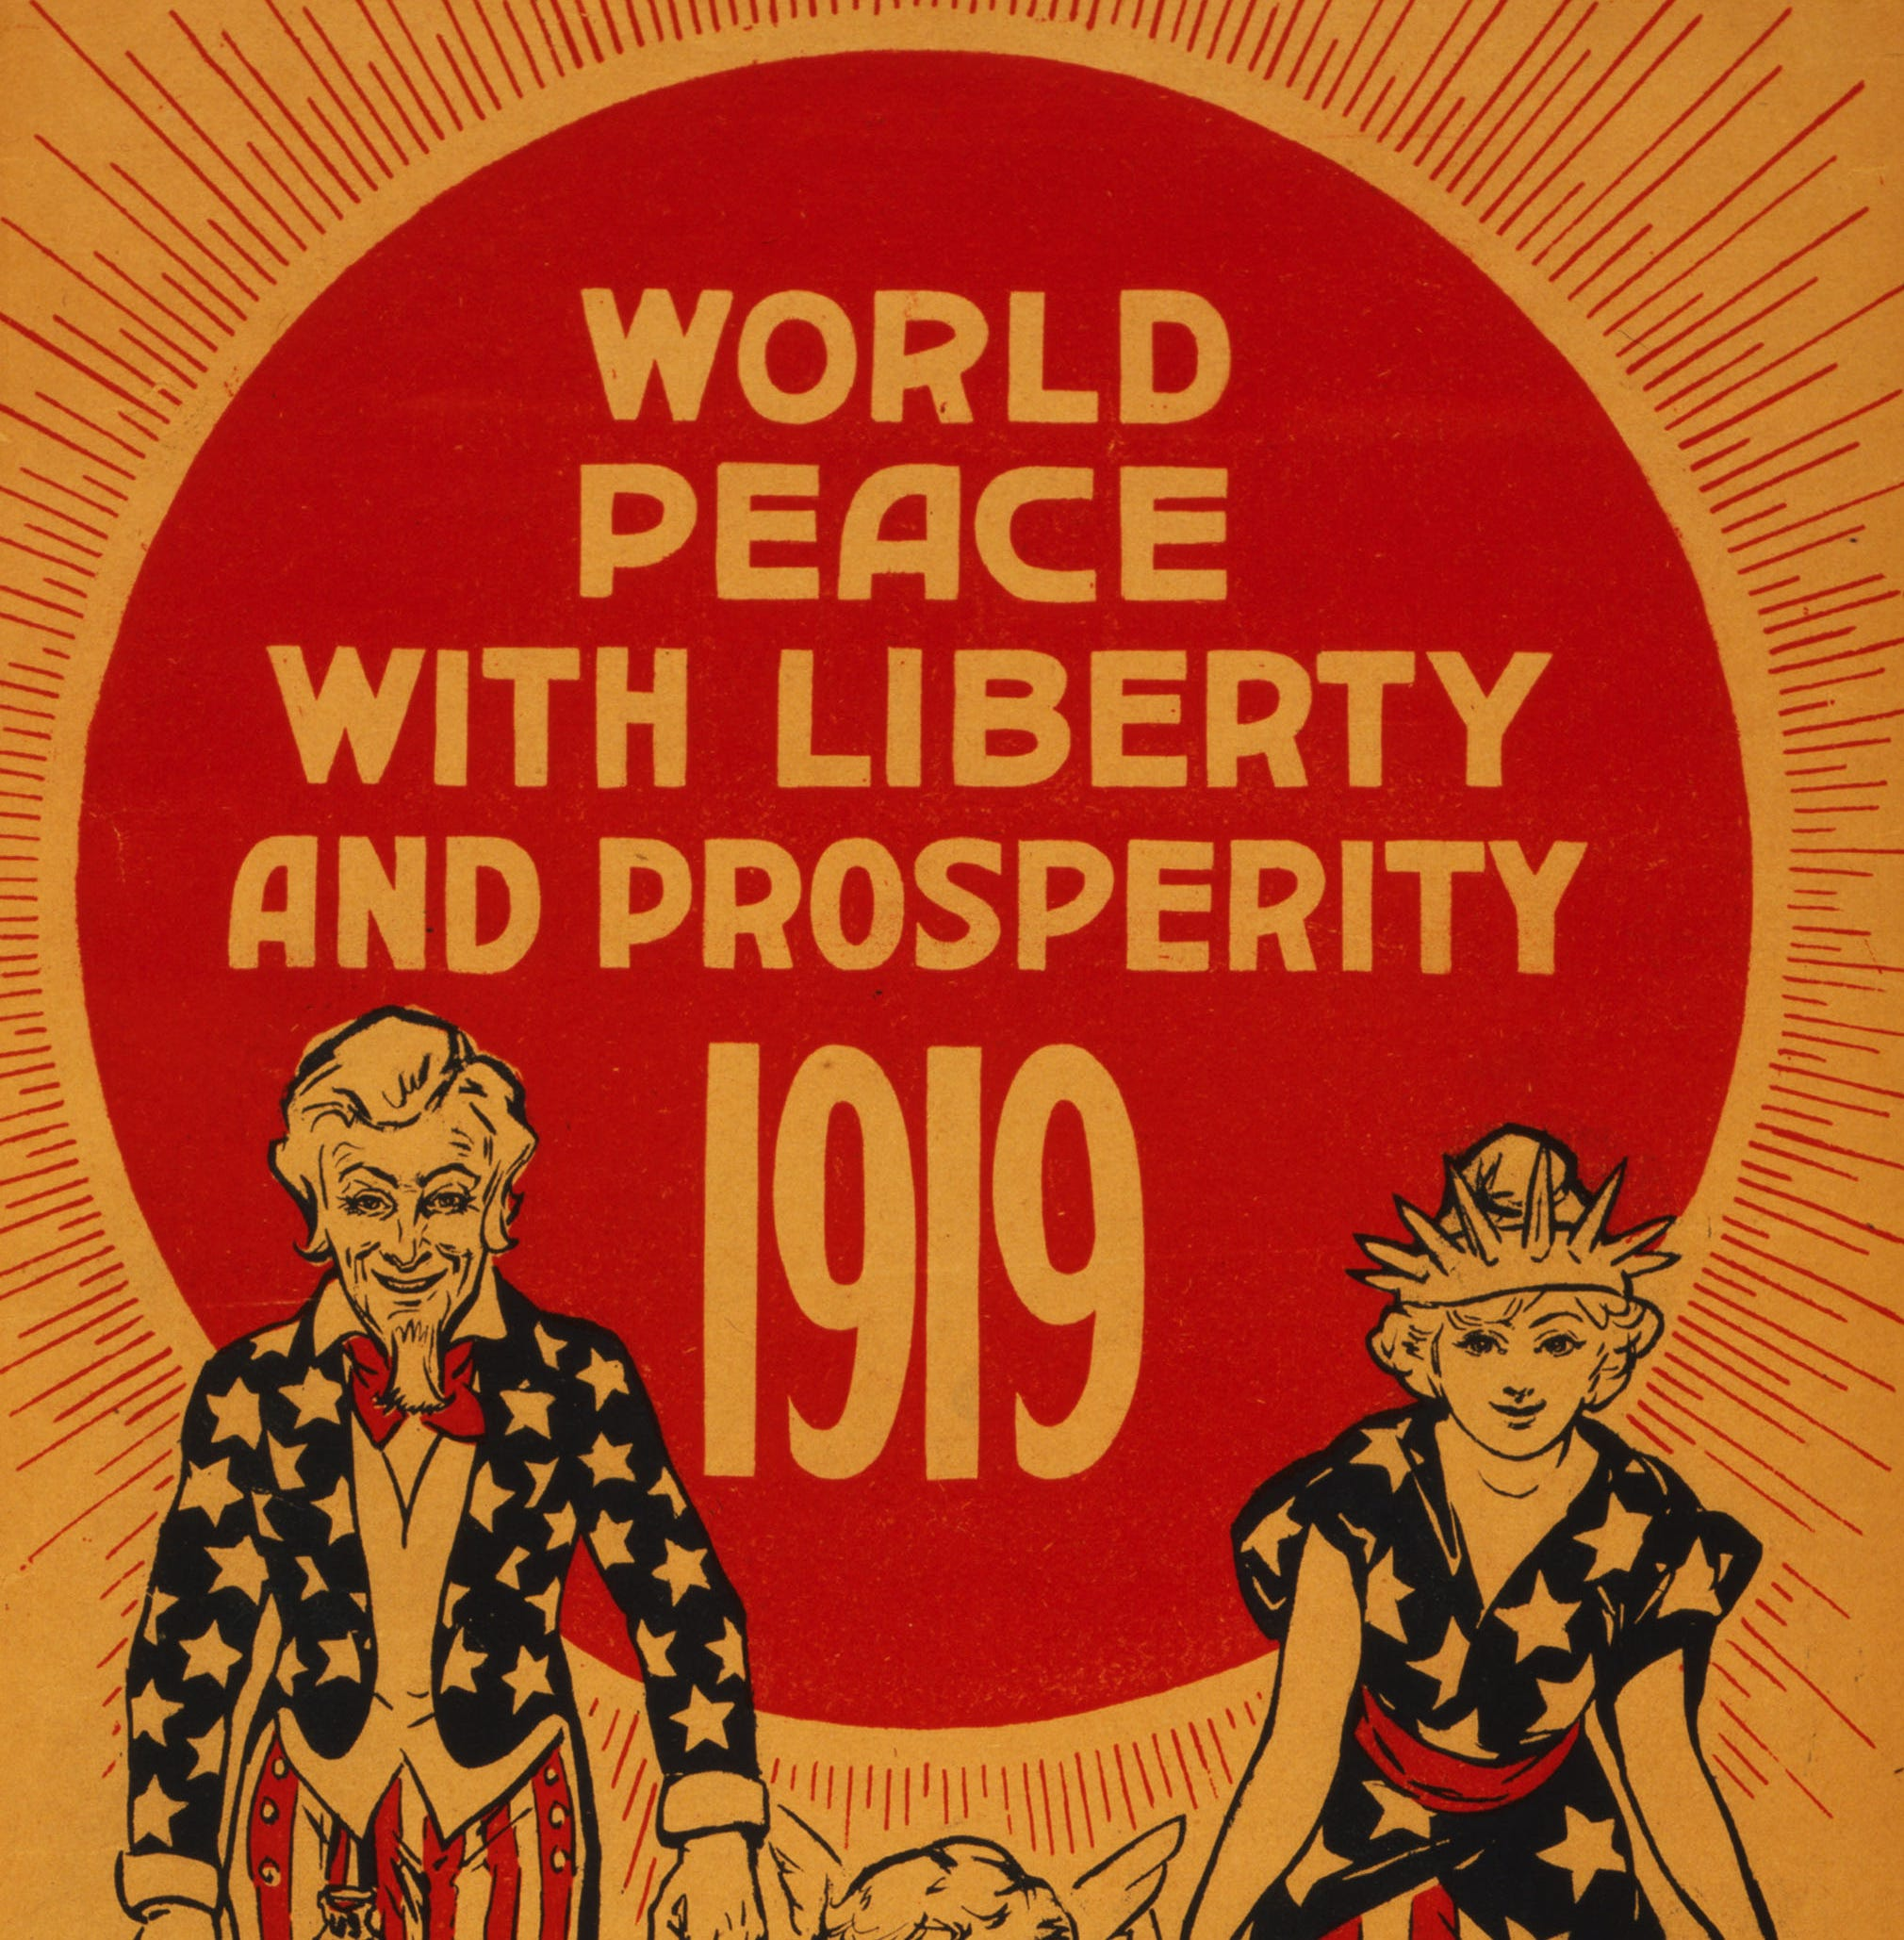 Portrait of the Past: 1919 prosperity poster